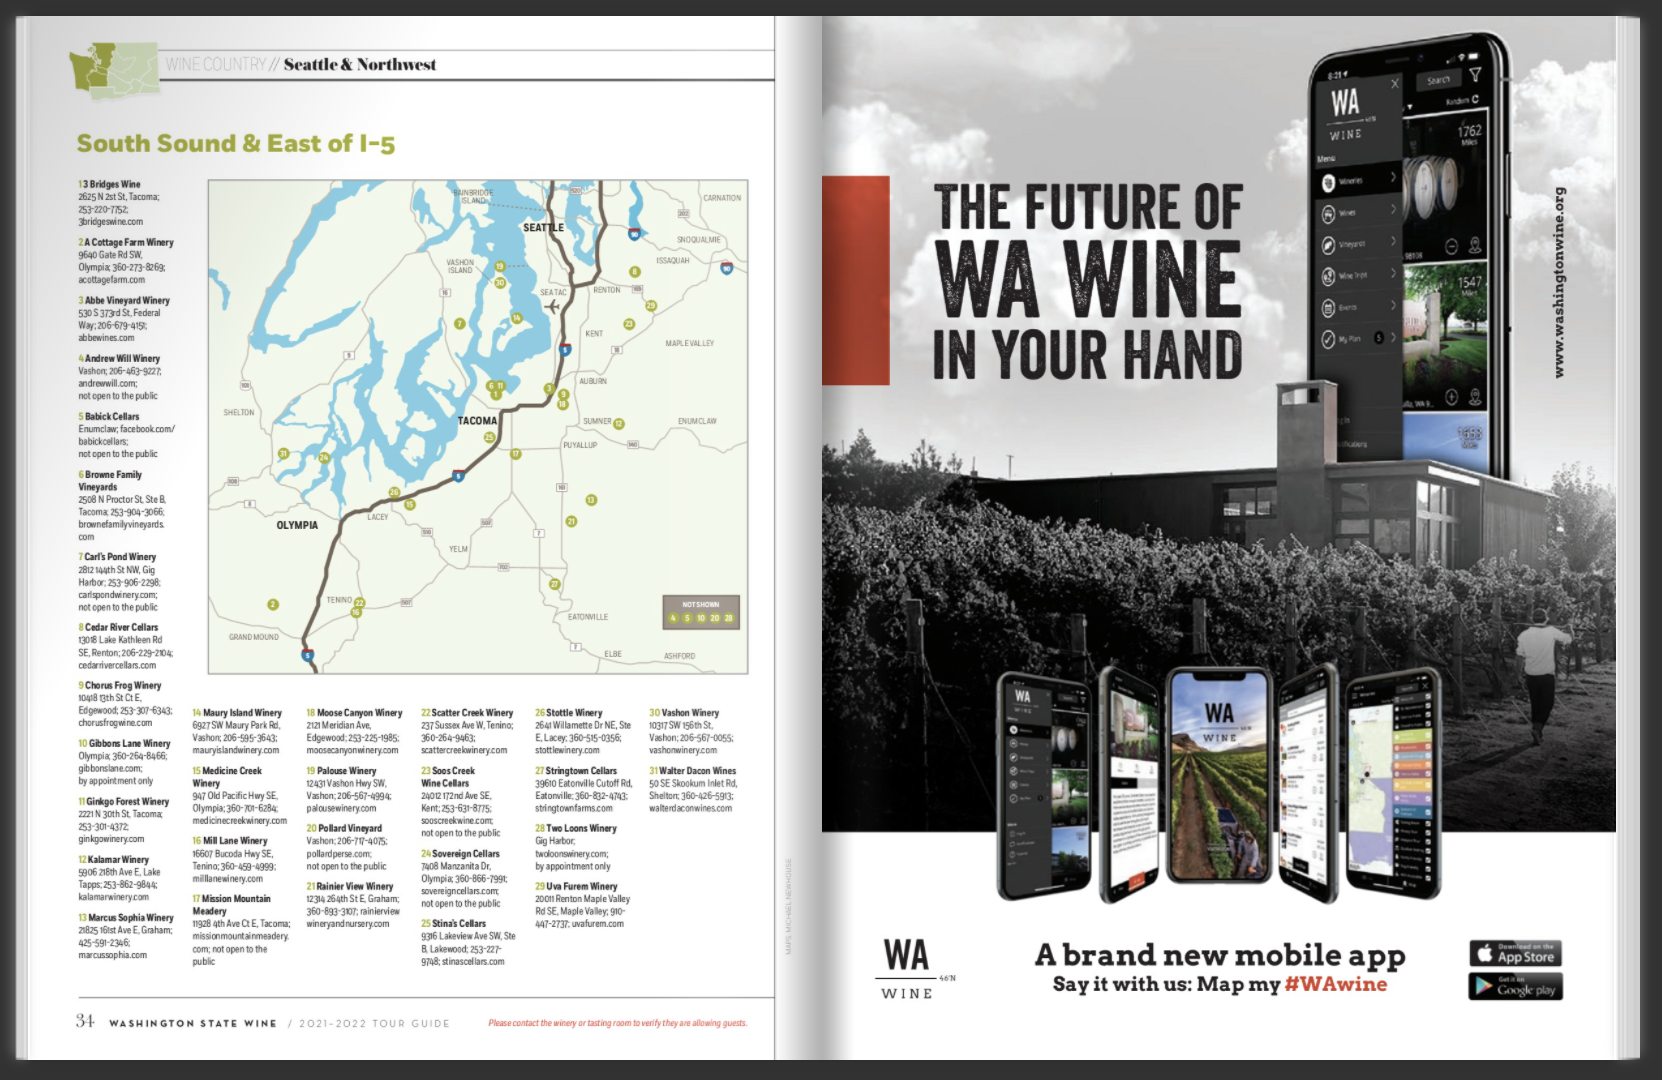 Two pages from a magazine, one of listings with a map of Olympia, Tacoma, and Seattle and the other of a black and white image of a modern building and a mobile phone overlaid above it.